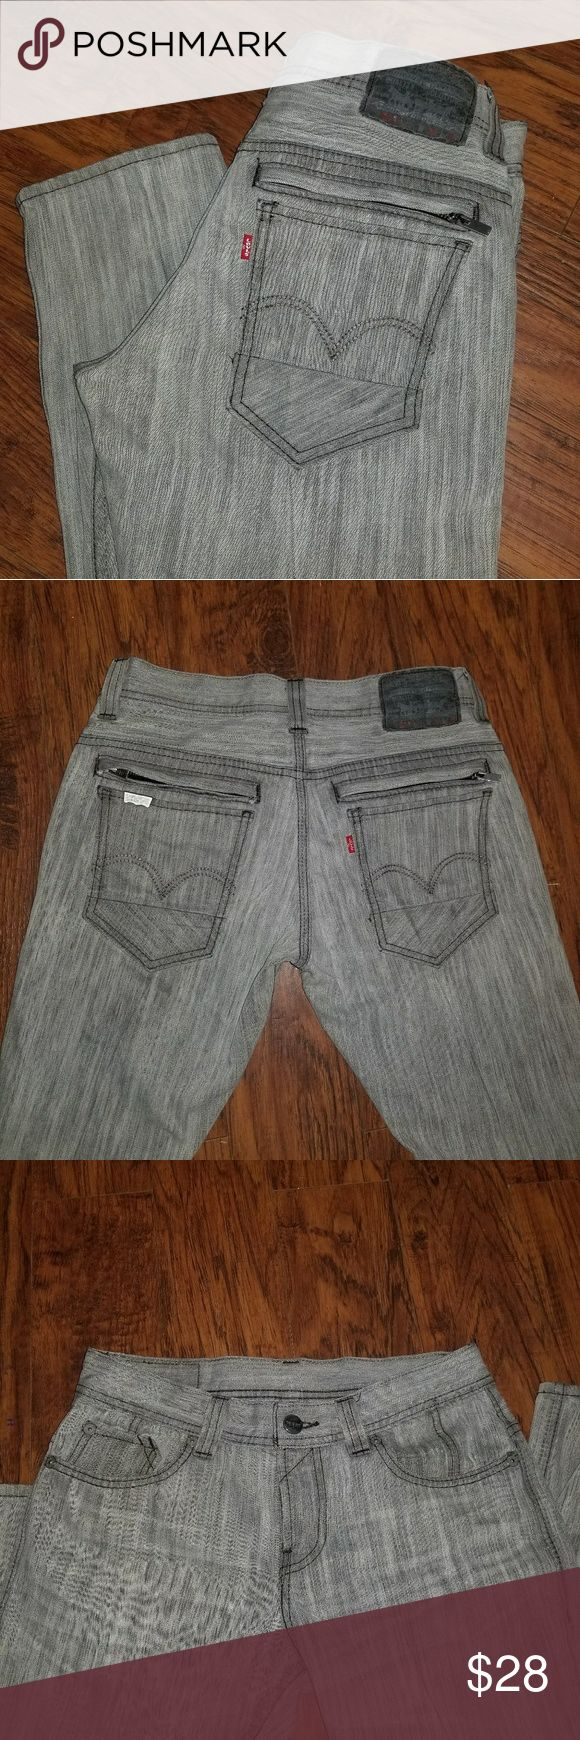 Levis 511 Skinny Trendy Levis 511 Skinny jeans in EUC. Antique silver hardware, red tab on back pocket, 2 extra zipper pockets on seat of pants. They are gray in color with no fraying. The size on these is 29×30 Levi's Jeans Skinny